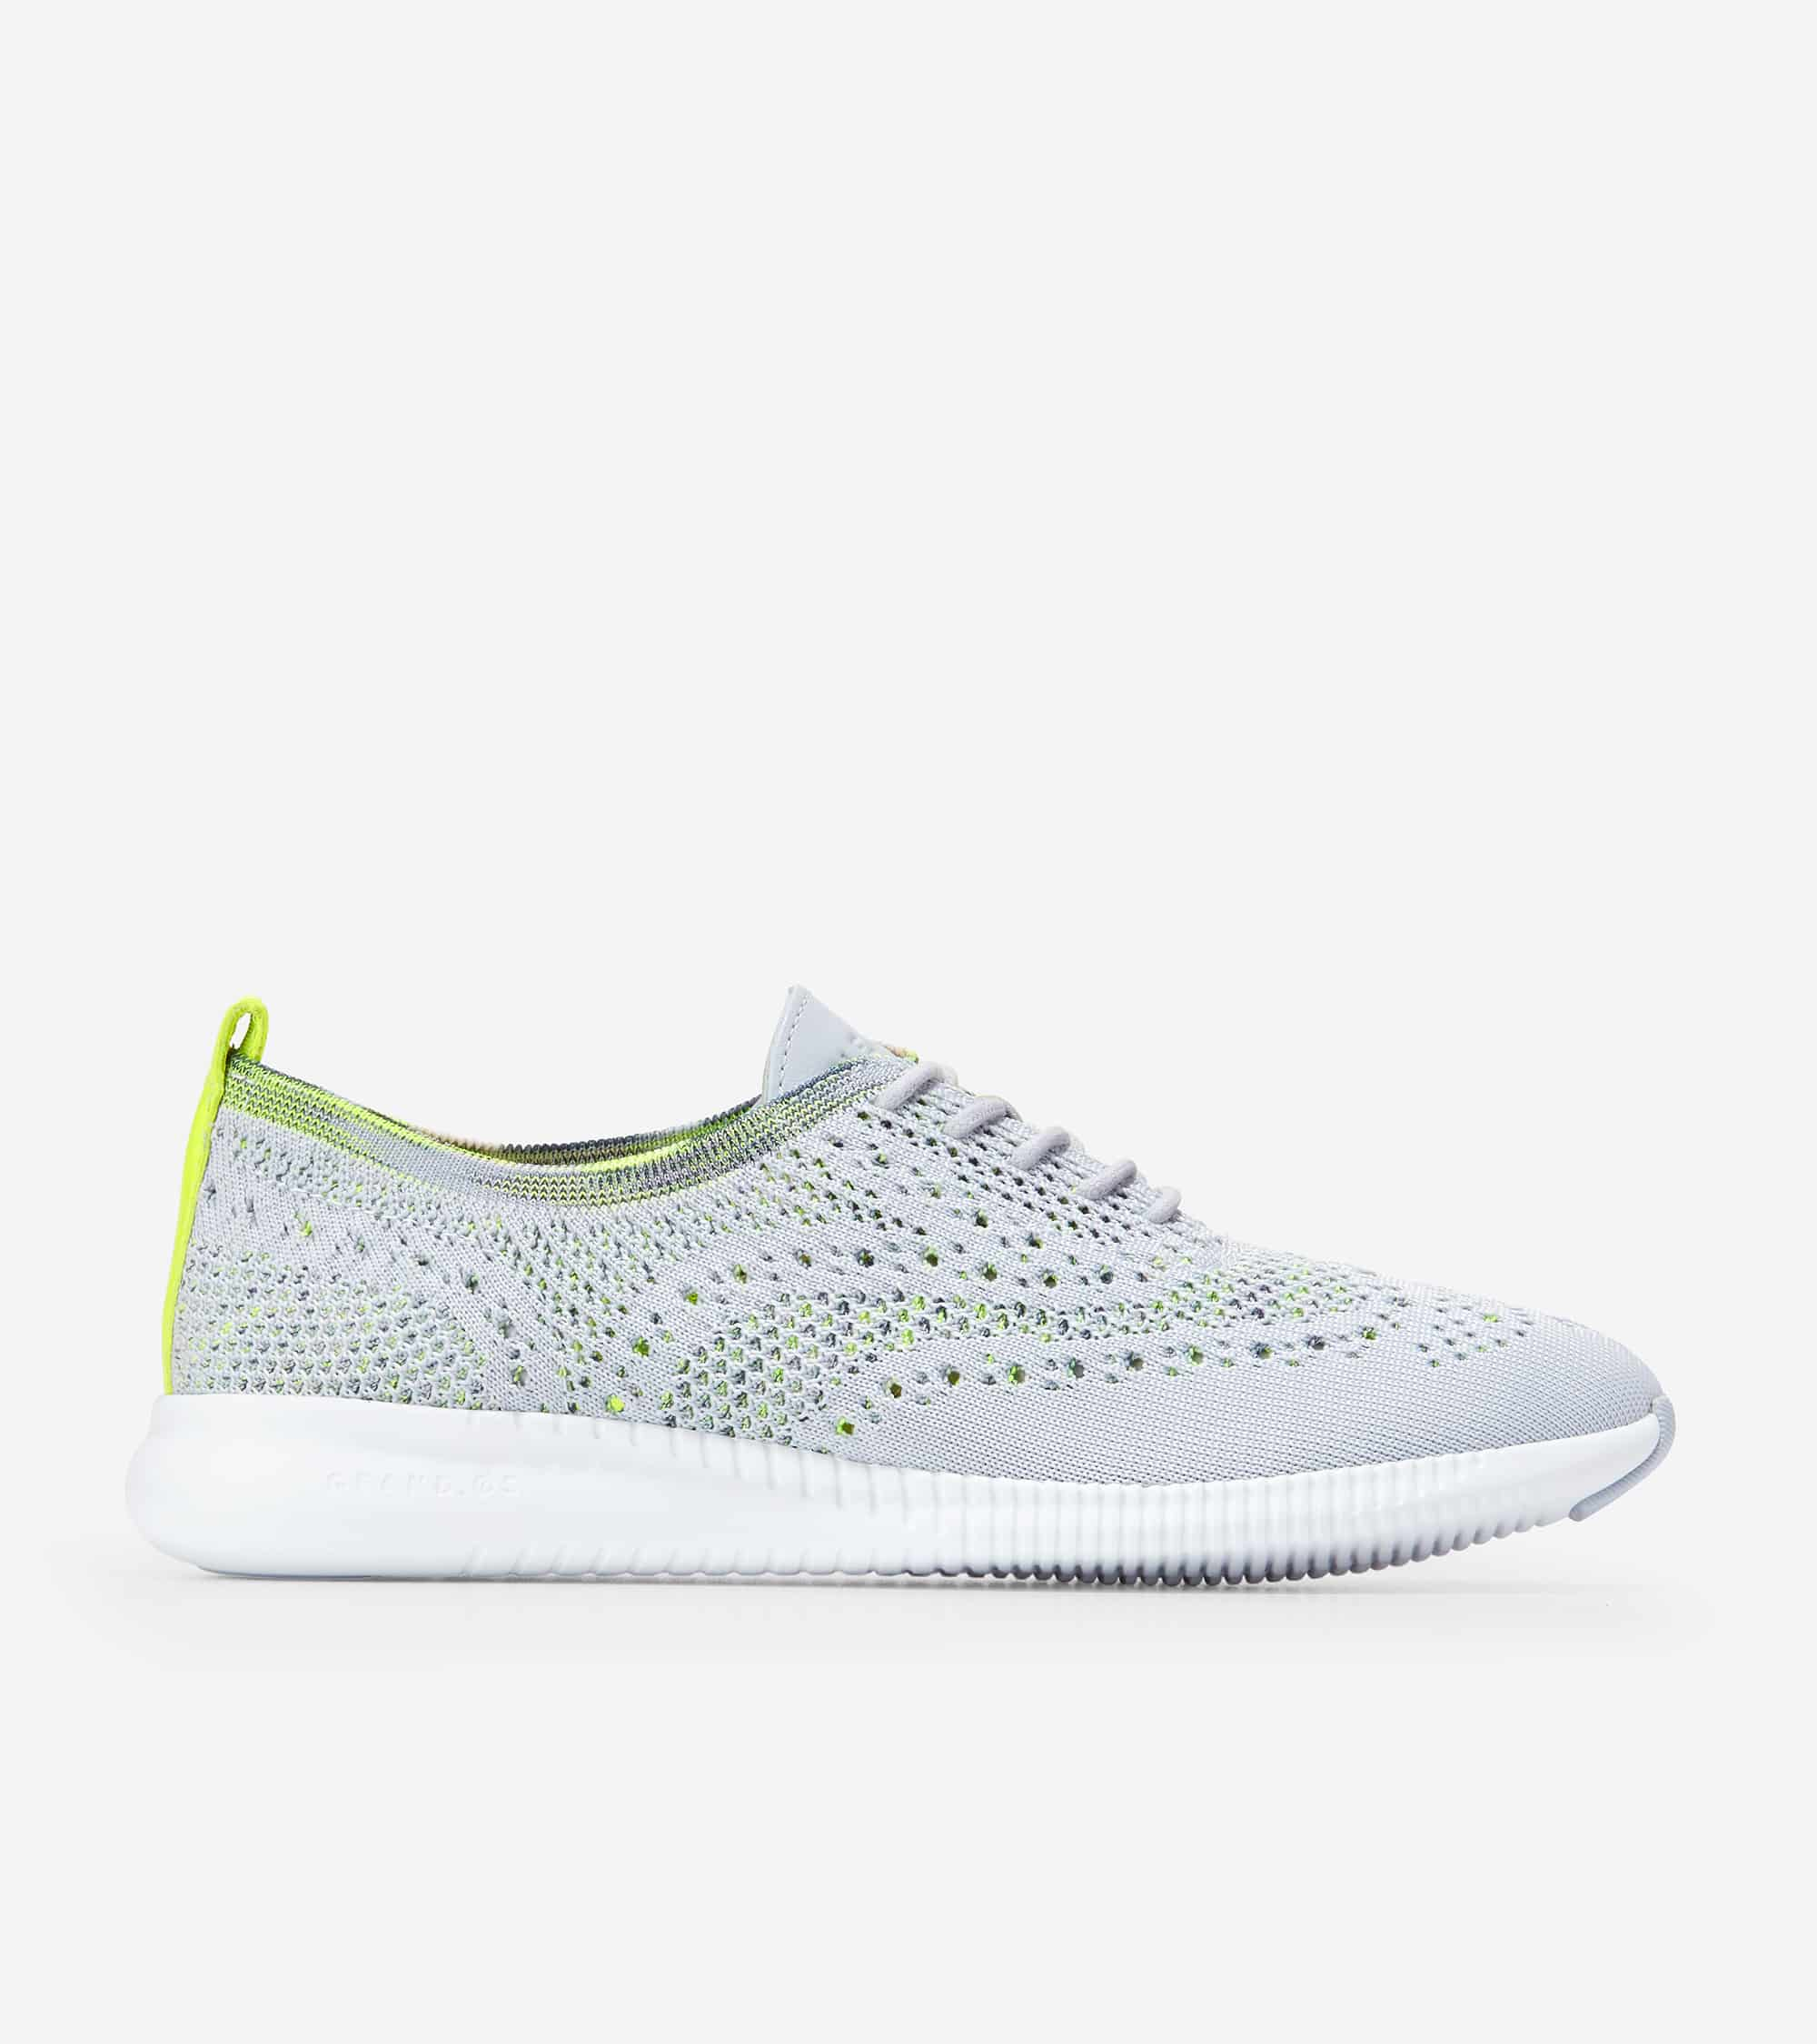 Cole Haan ZERØGRAND Stitchlite Oxford Arctic Ice & Multi Ombre / Safety Yellow Patent / Optic White Midsole / Arctic Ice Rbr Pods